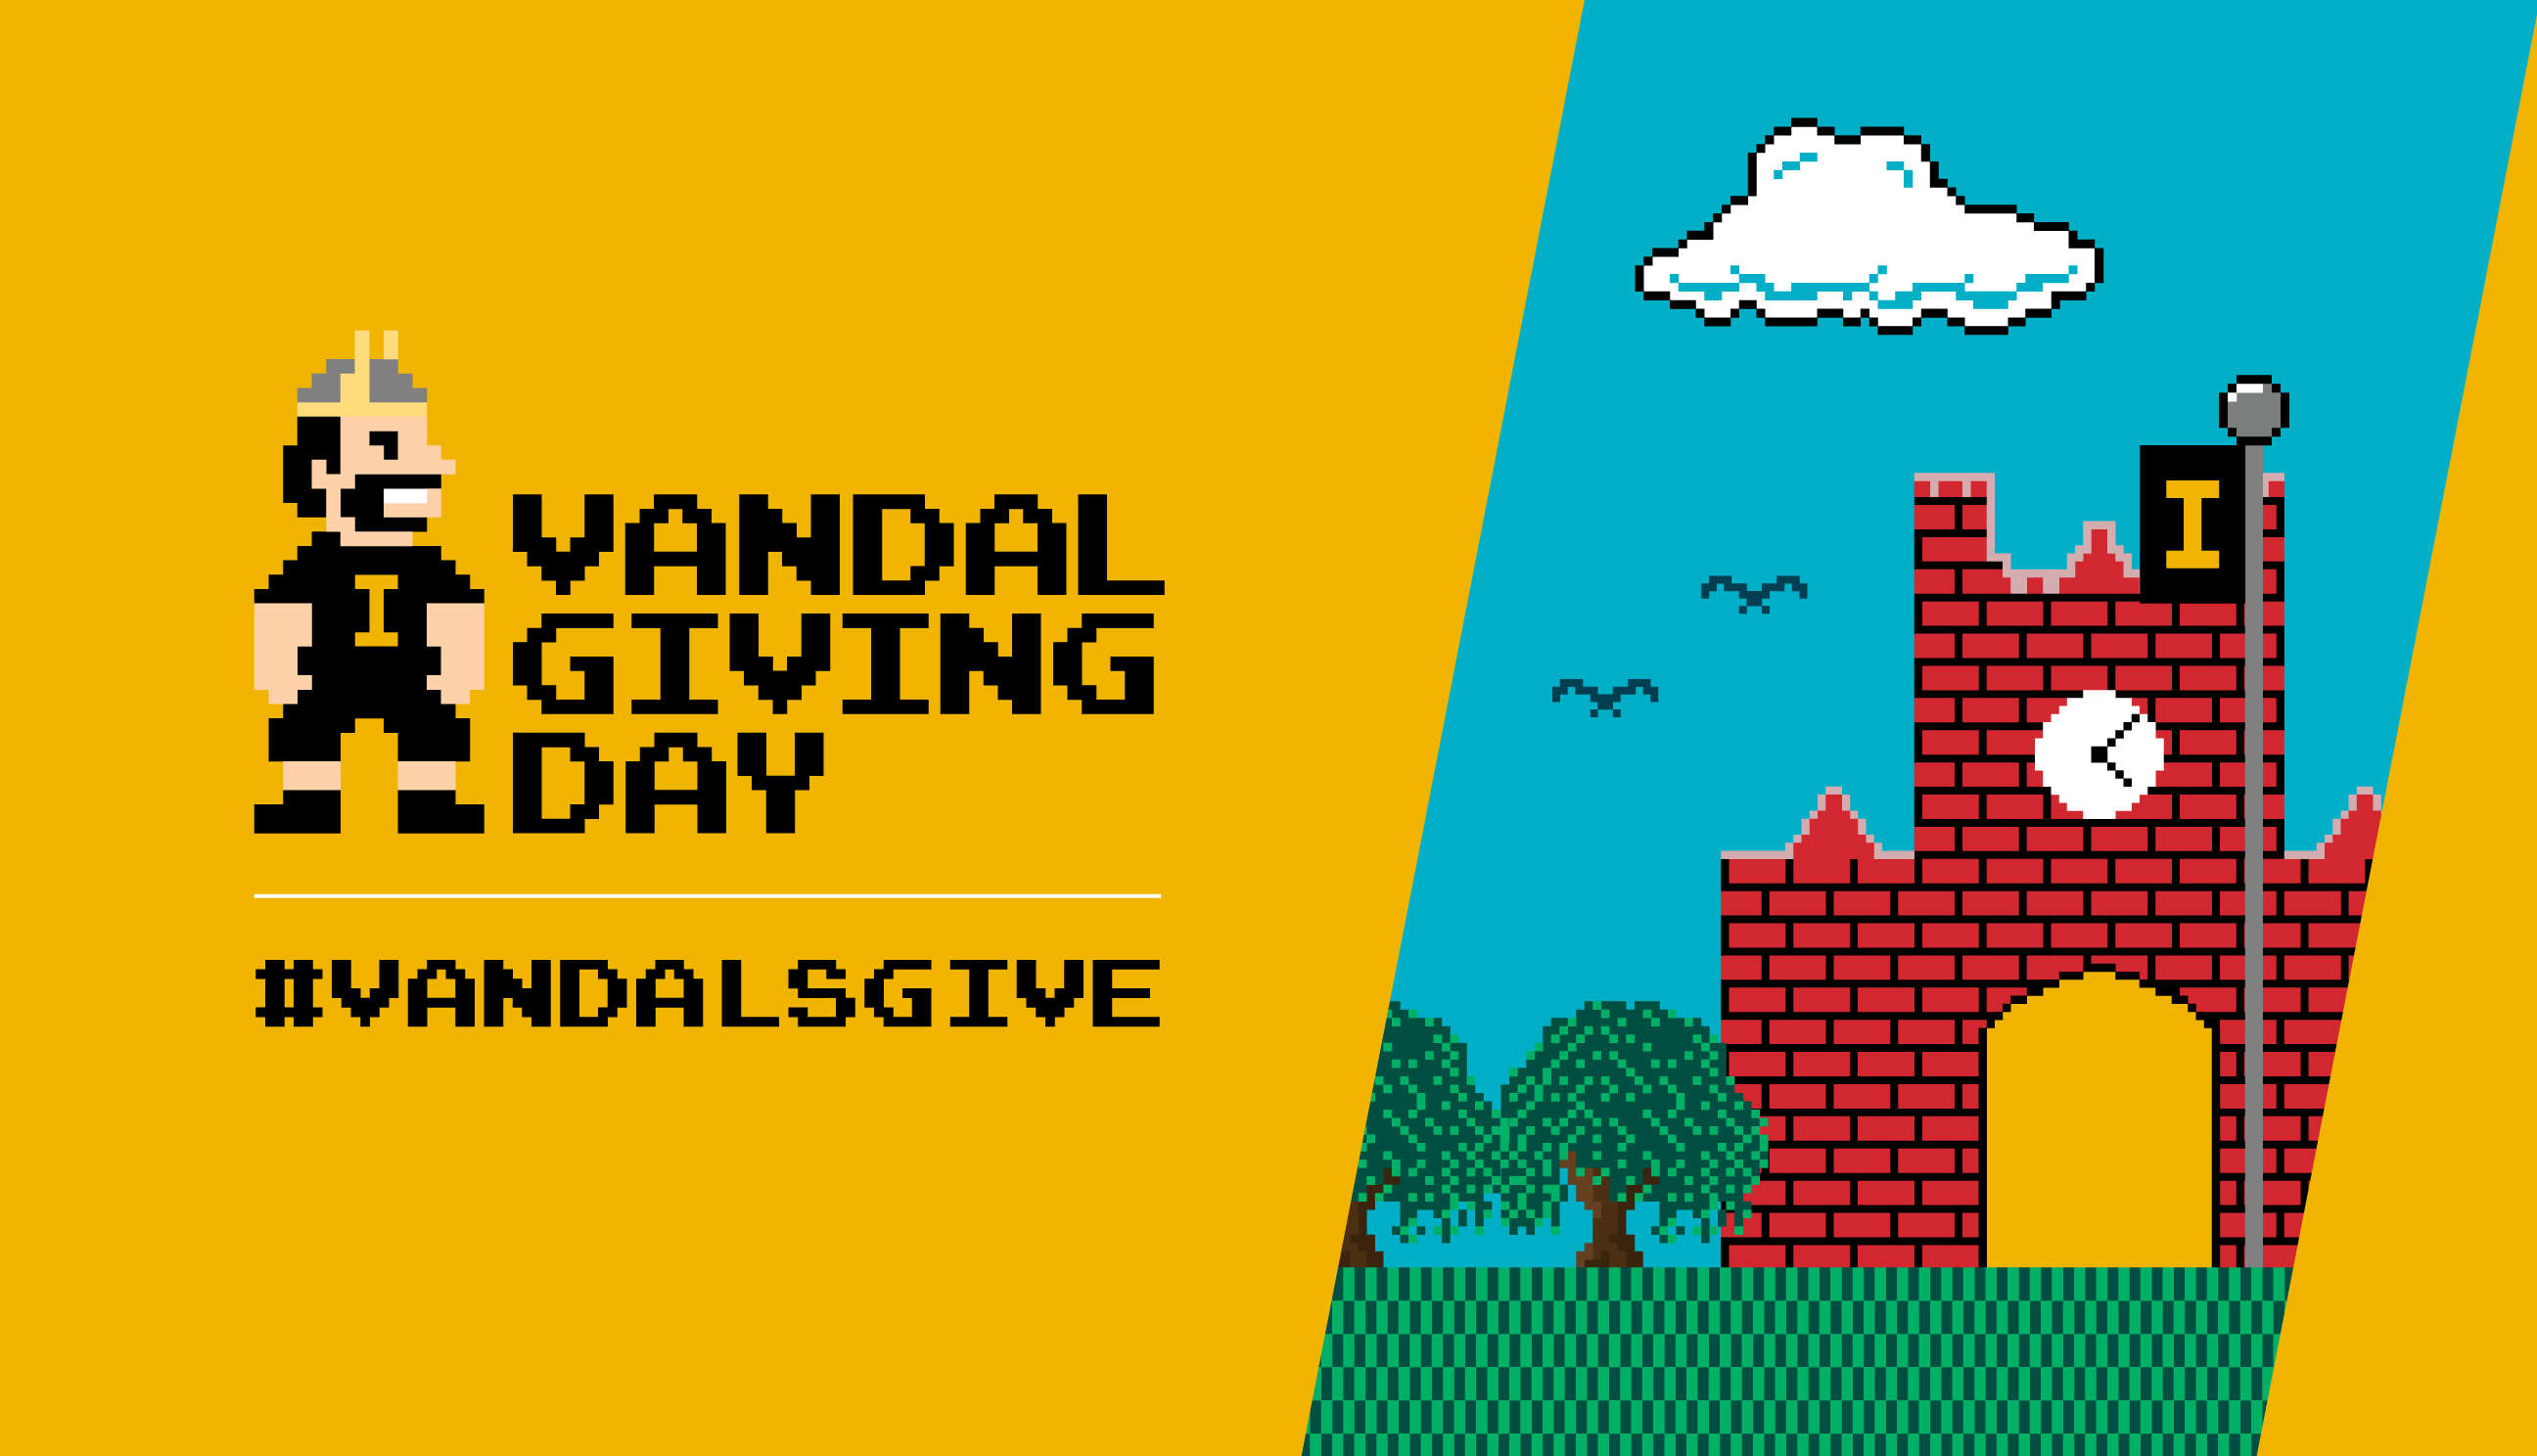 Vandal Giving Day 8-bit Joe and Commons